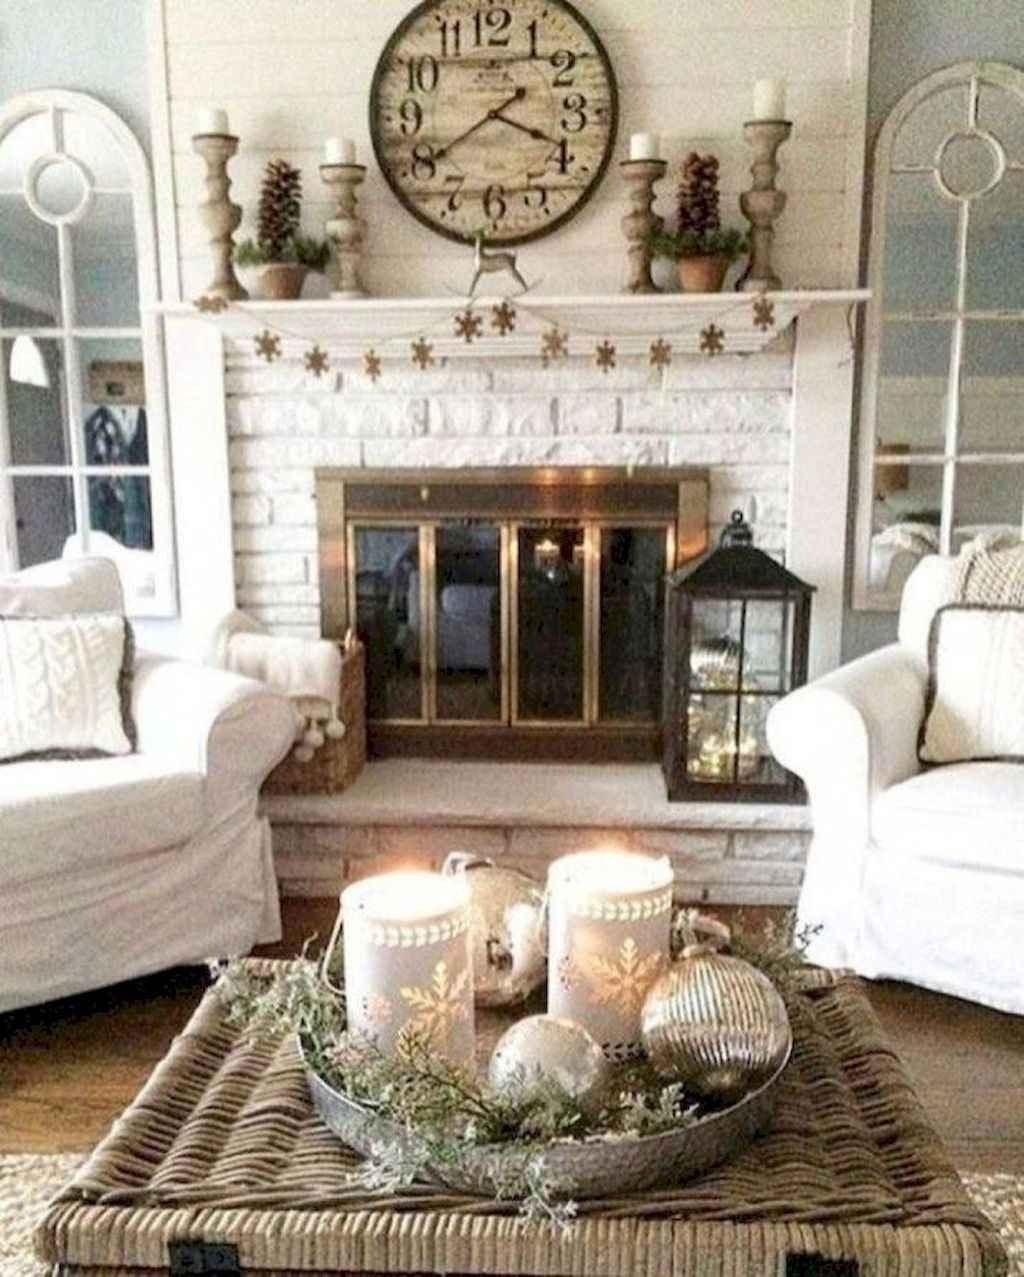 50 Cozy French Country Living Room Ideas French Country Living Room Winter Living Room